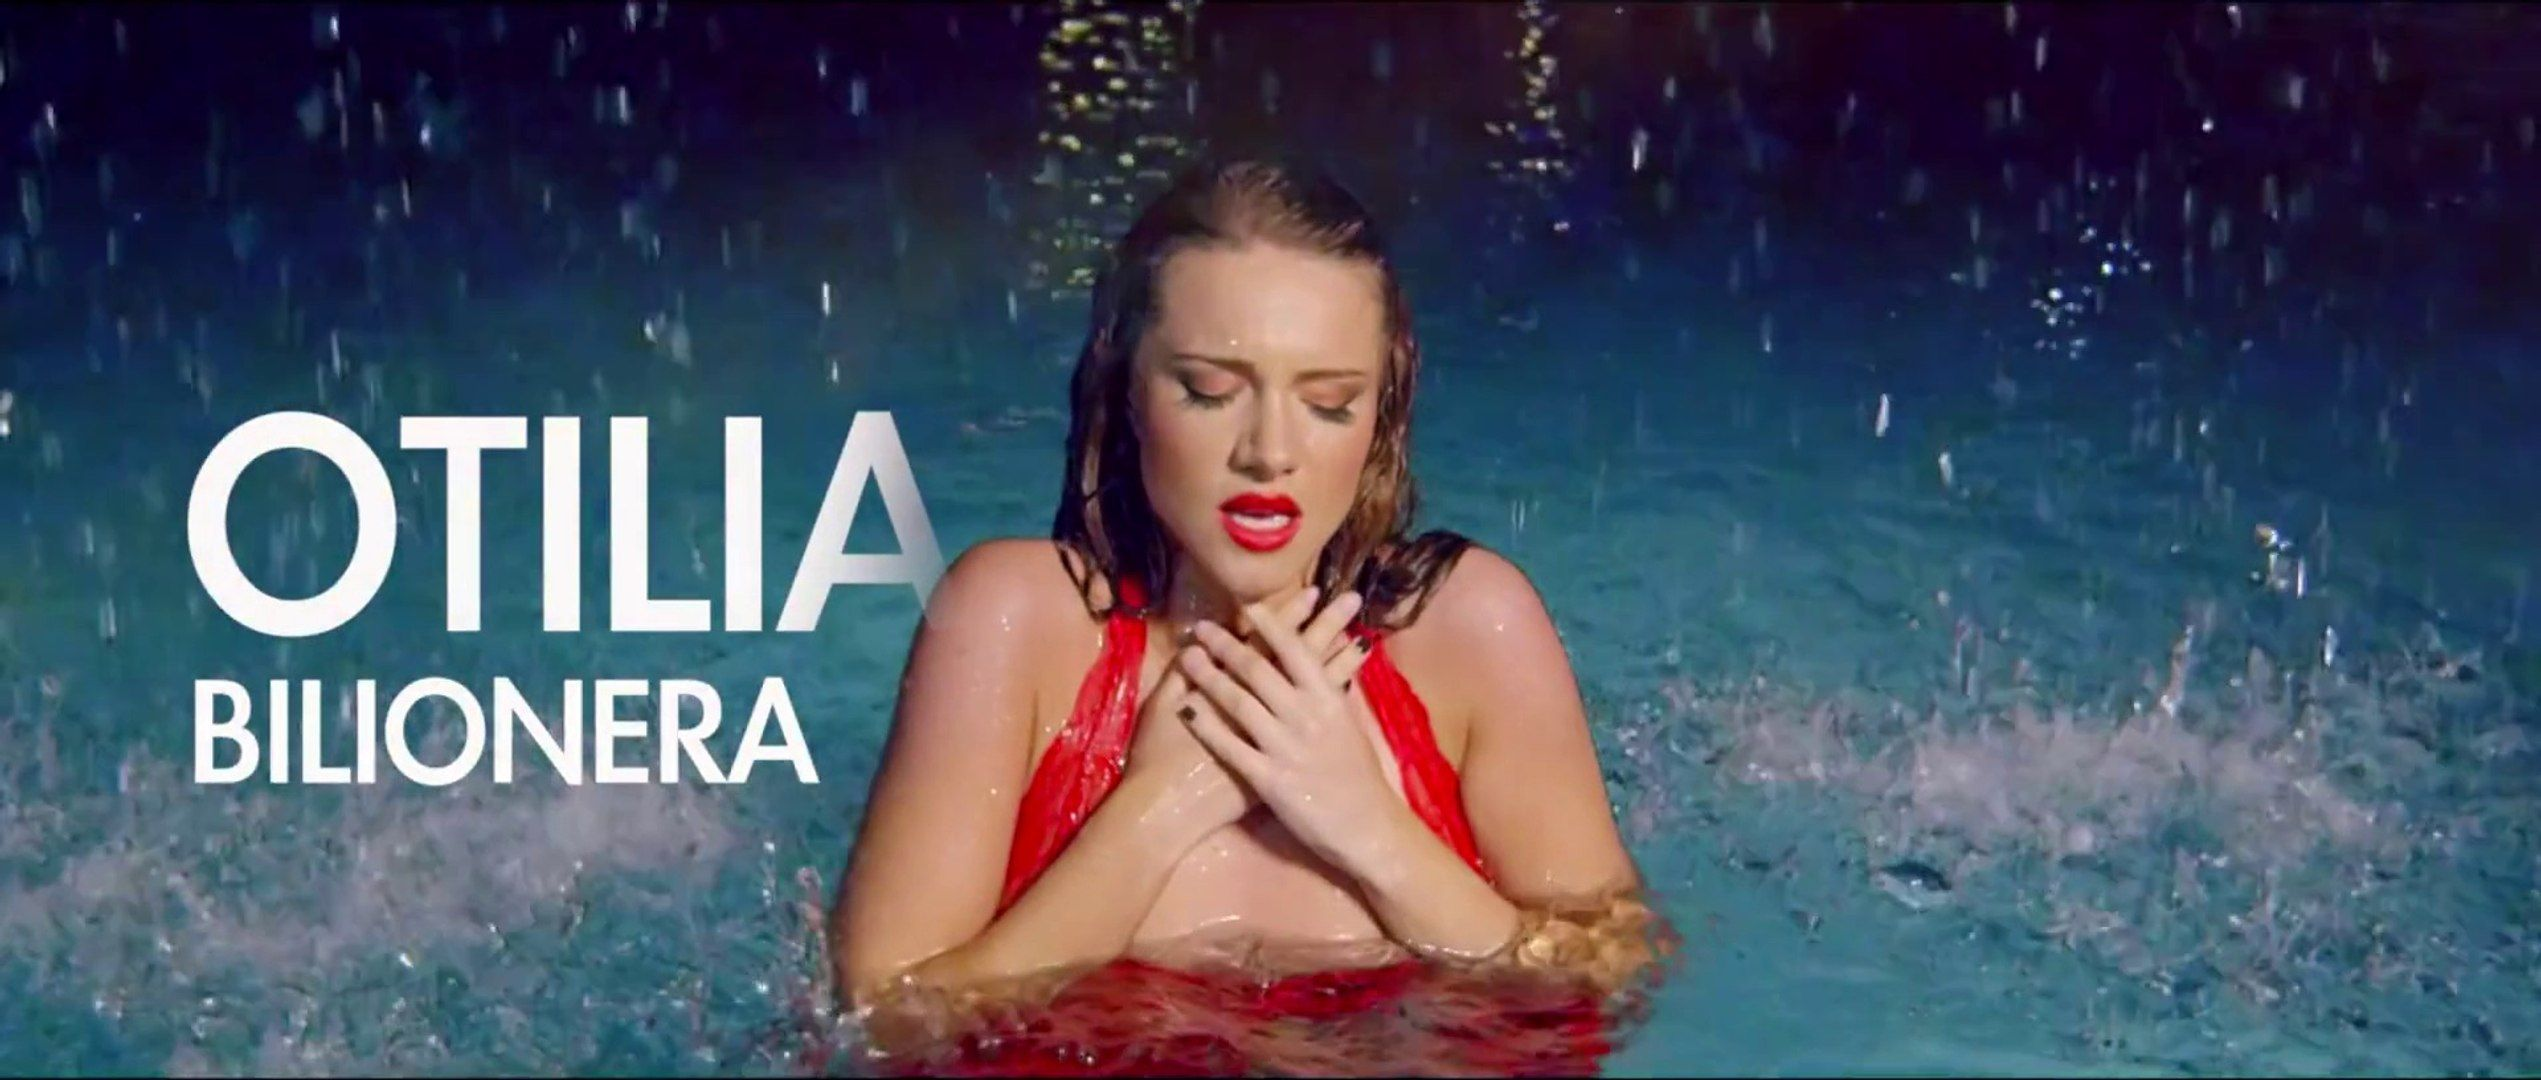 Otilia Bilionera Official Video Songs 2017 News Songs Songs